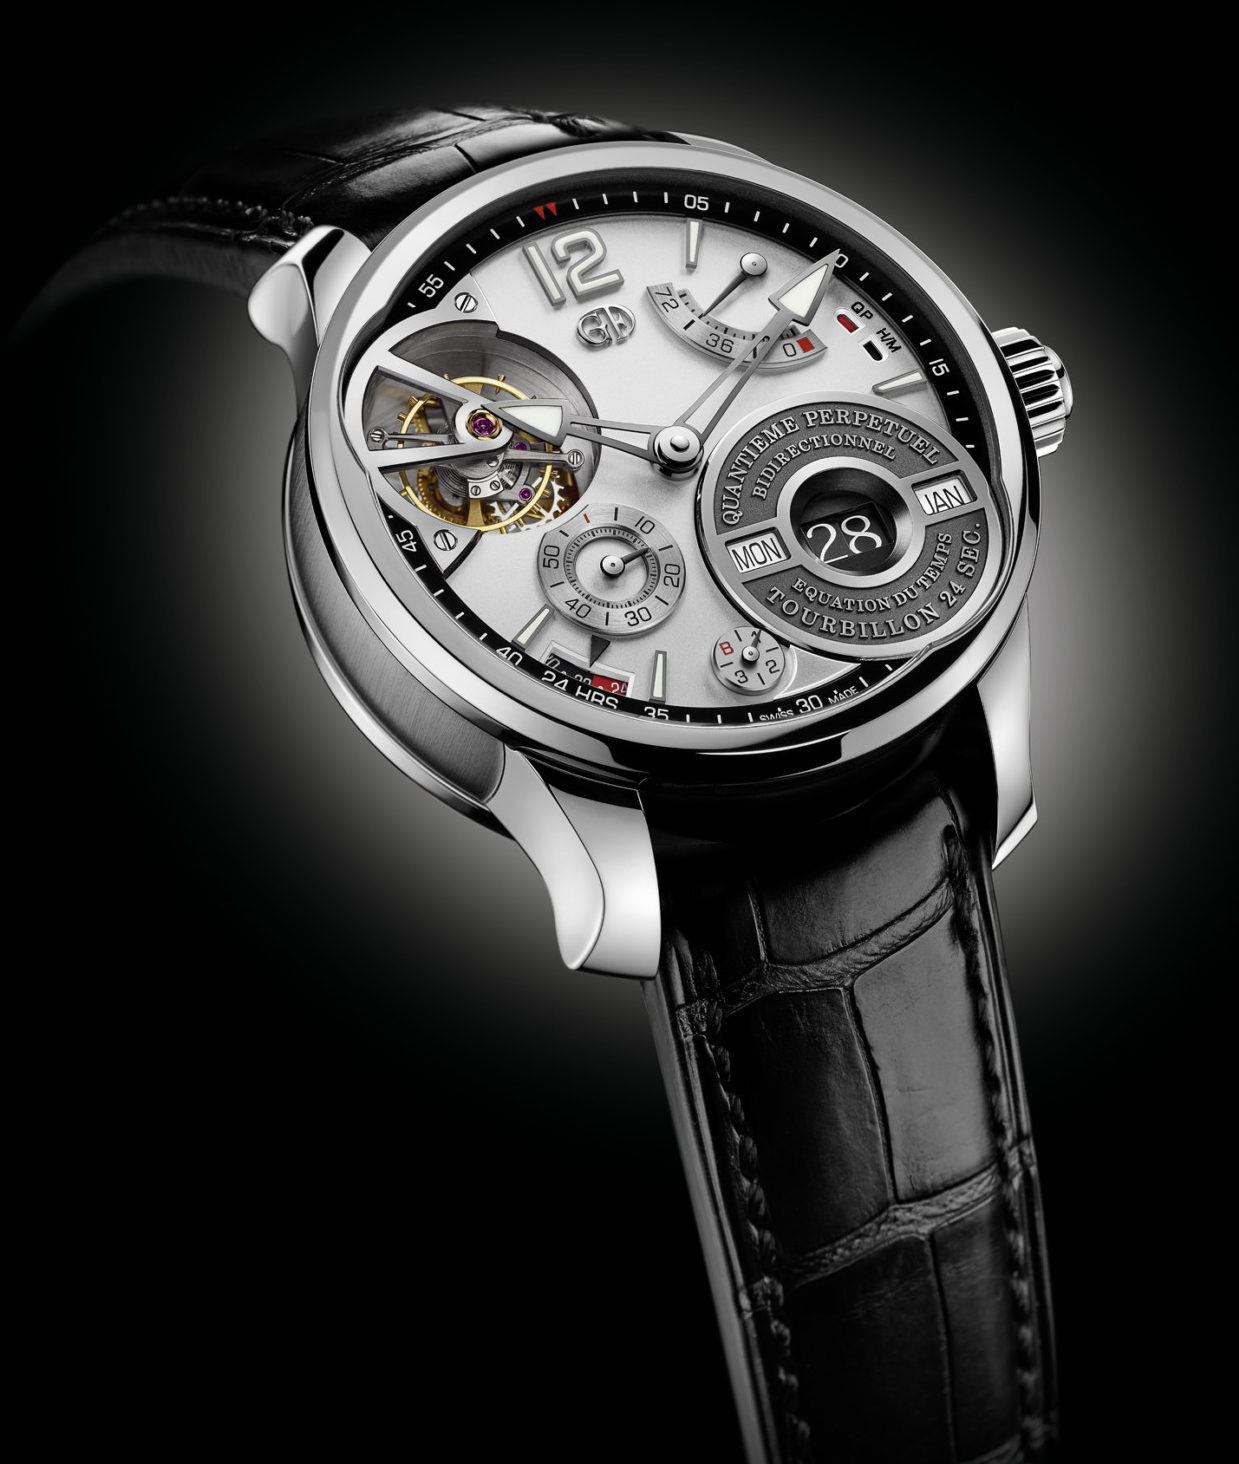 Tourbillon Skeleton Calendar Watch Prize: Greubel Forsey, QP à Équation.